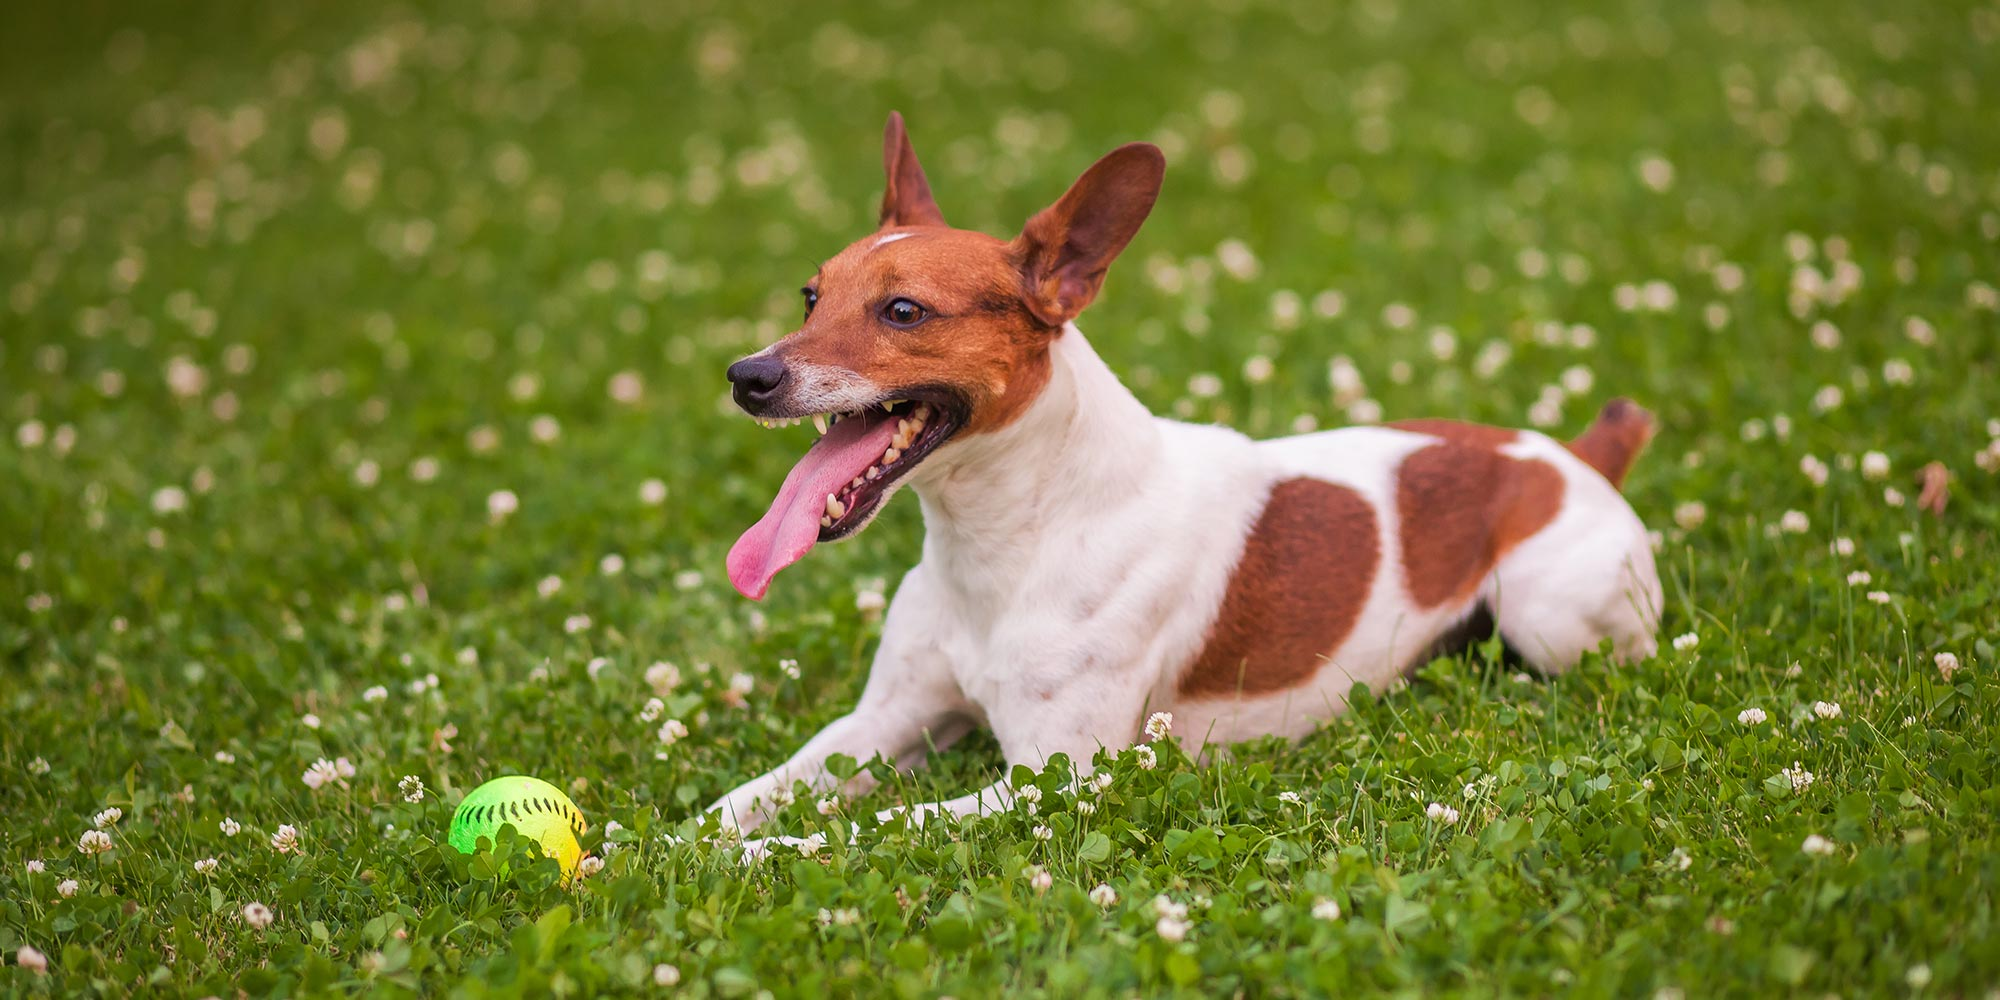 dog playing with ball in the grass